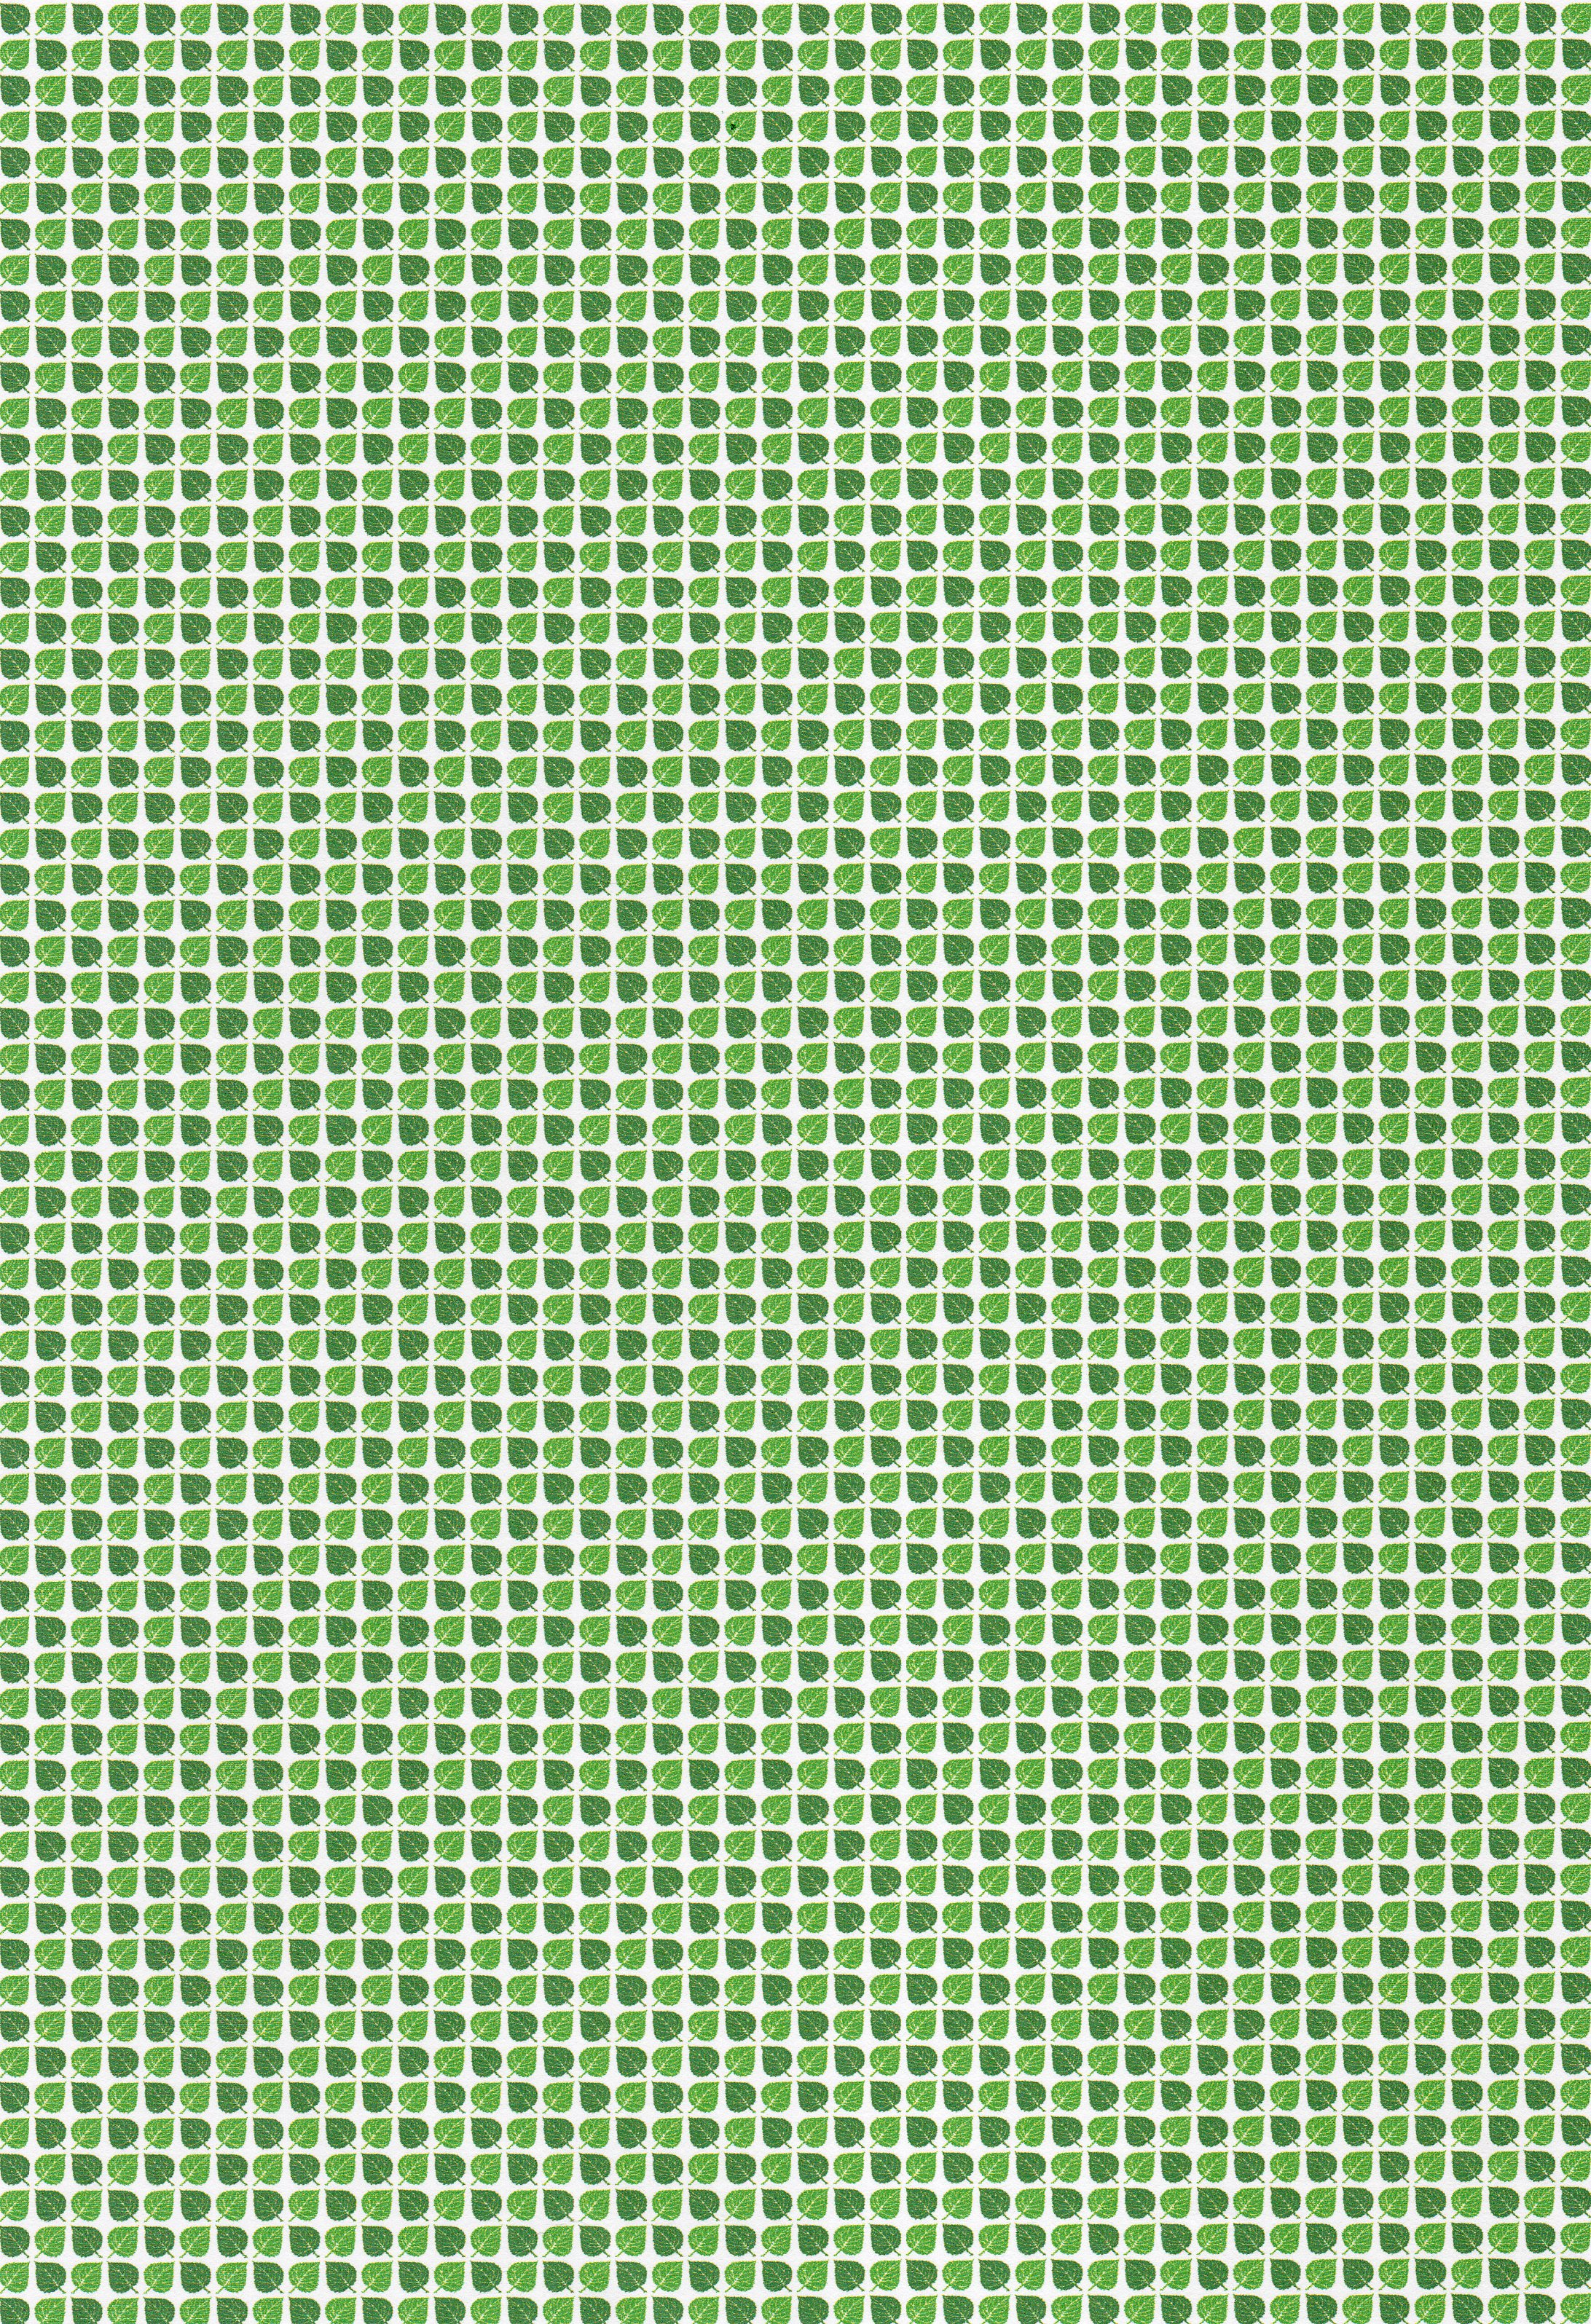 green pattern patterns 1900x1200 - photo #23